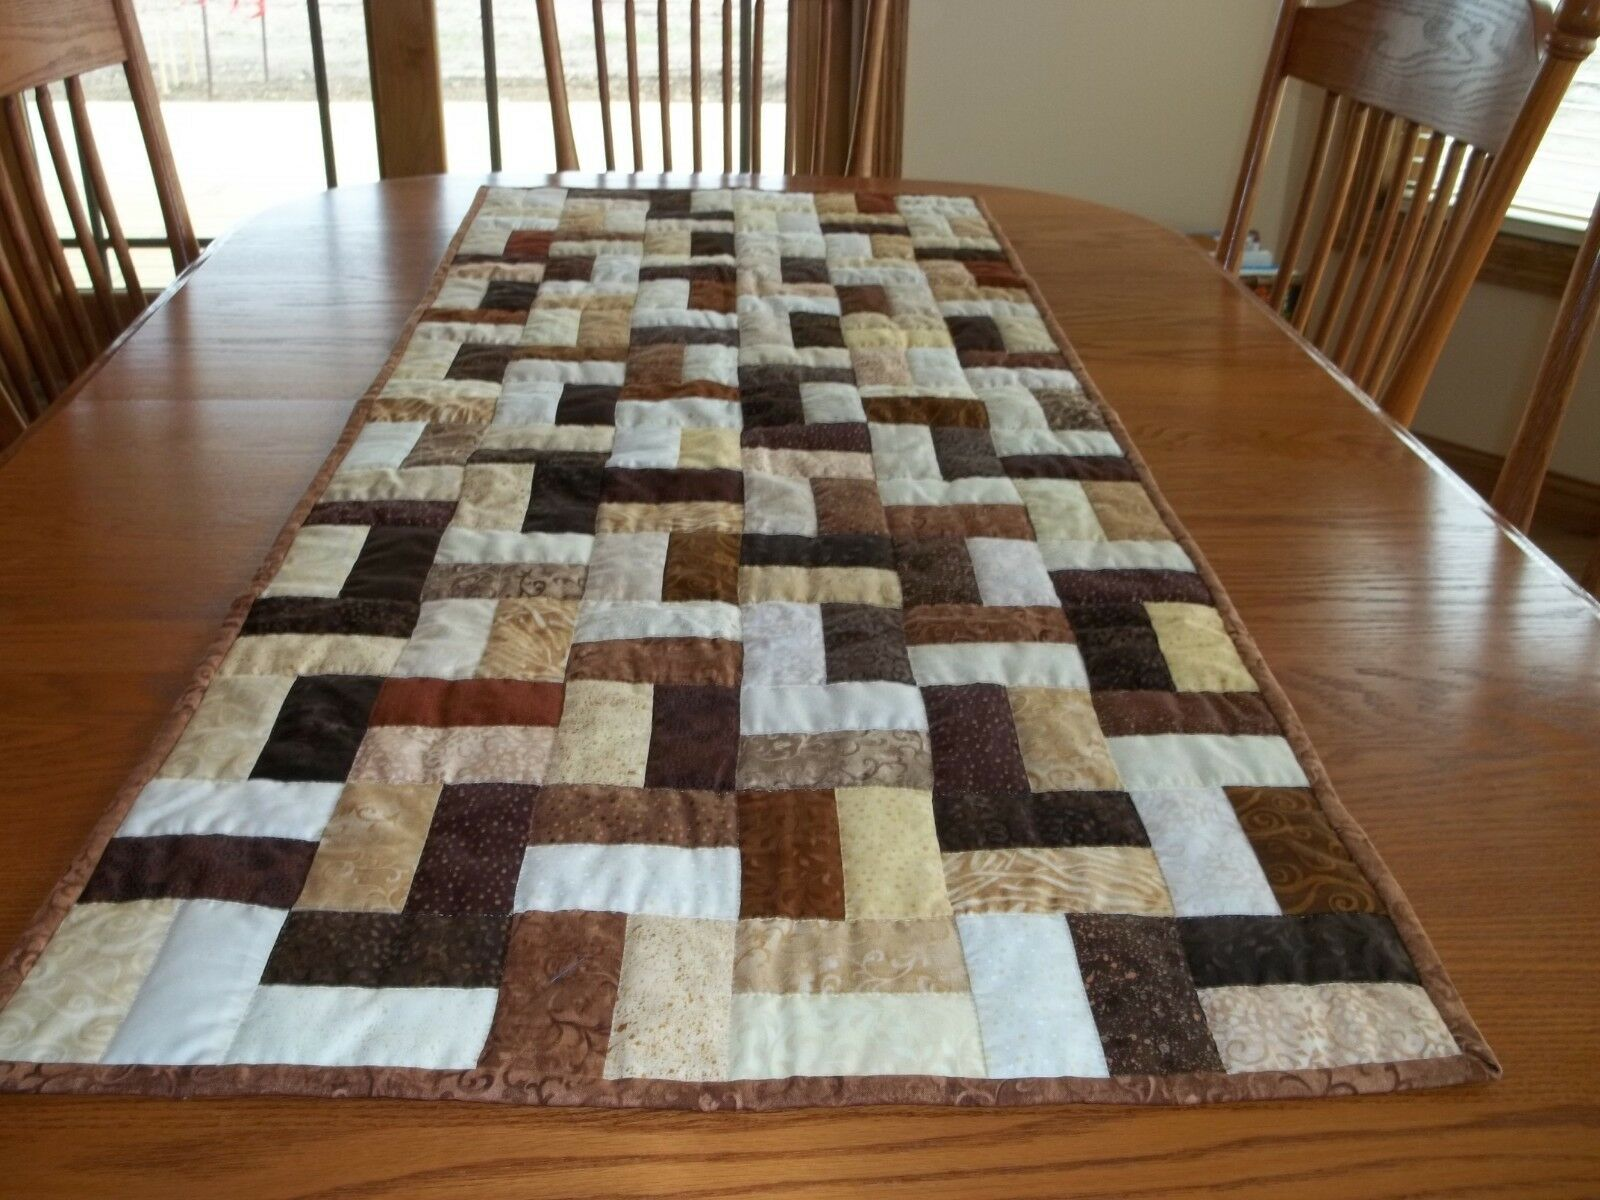 New Handcrafted & Main Matelassé Table Runner, 23 1 2  X 57 1 2 , Café Cafe